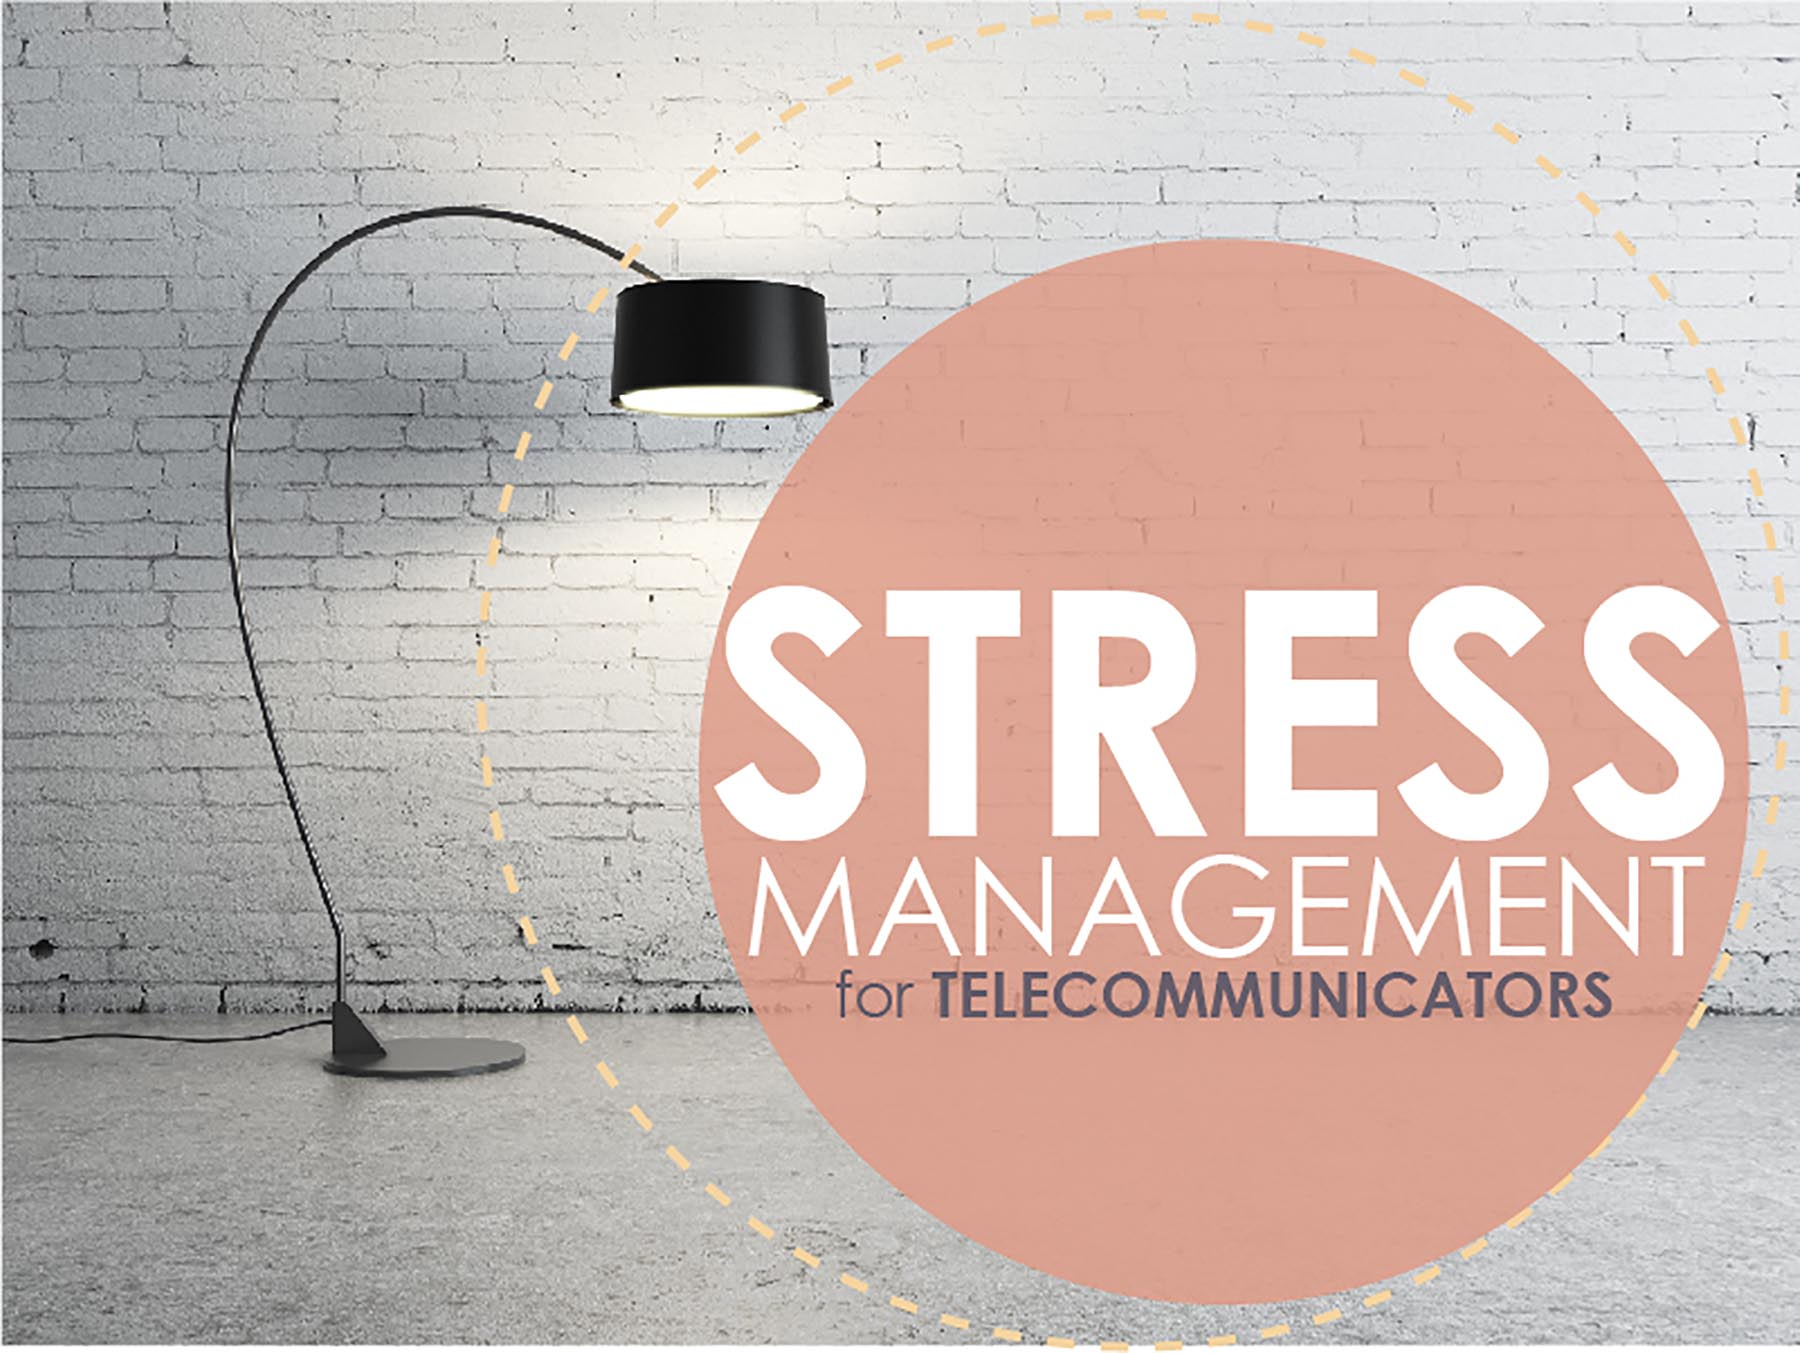 Stress Management for Telecommunicators